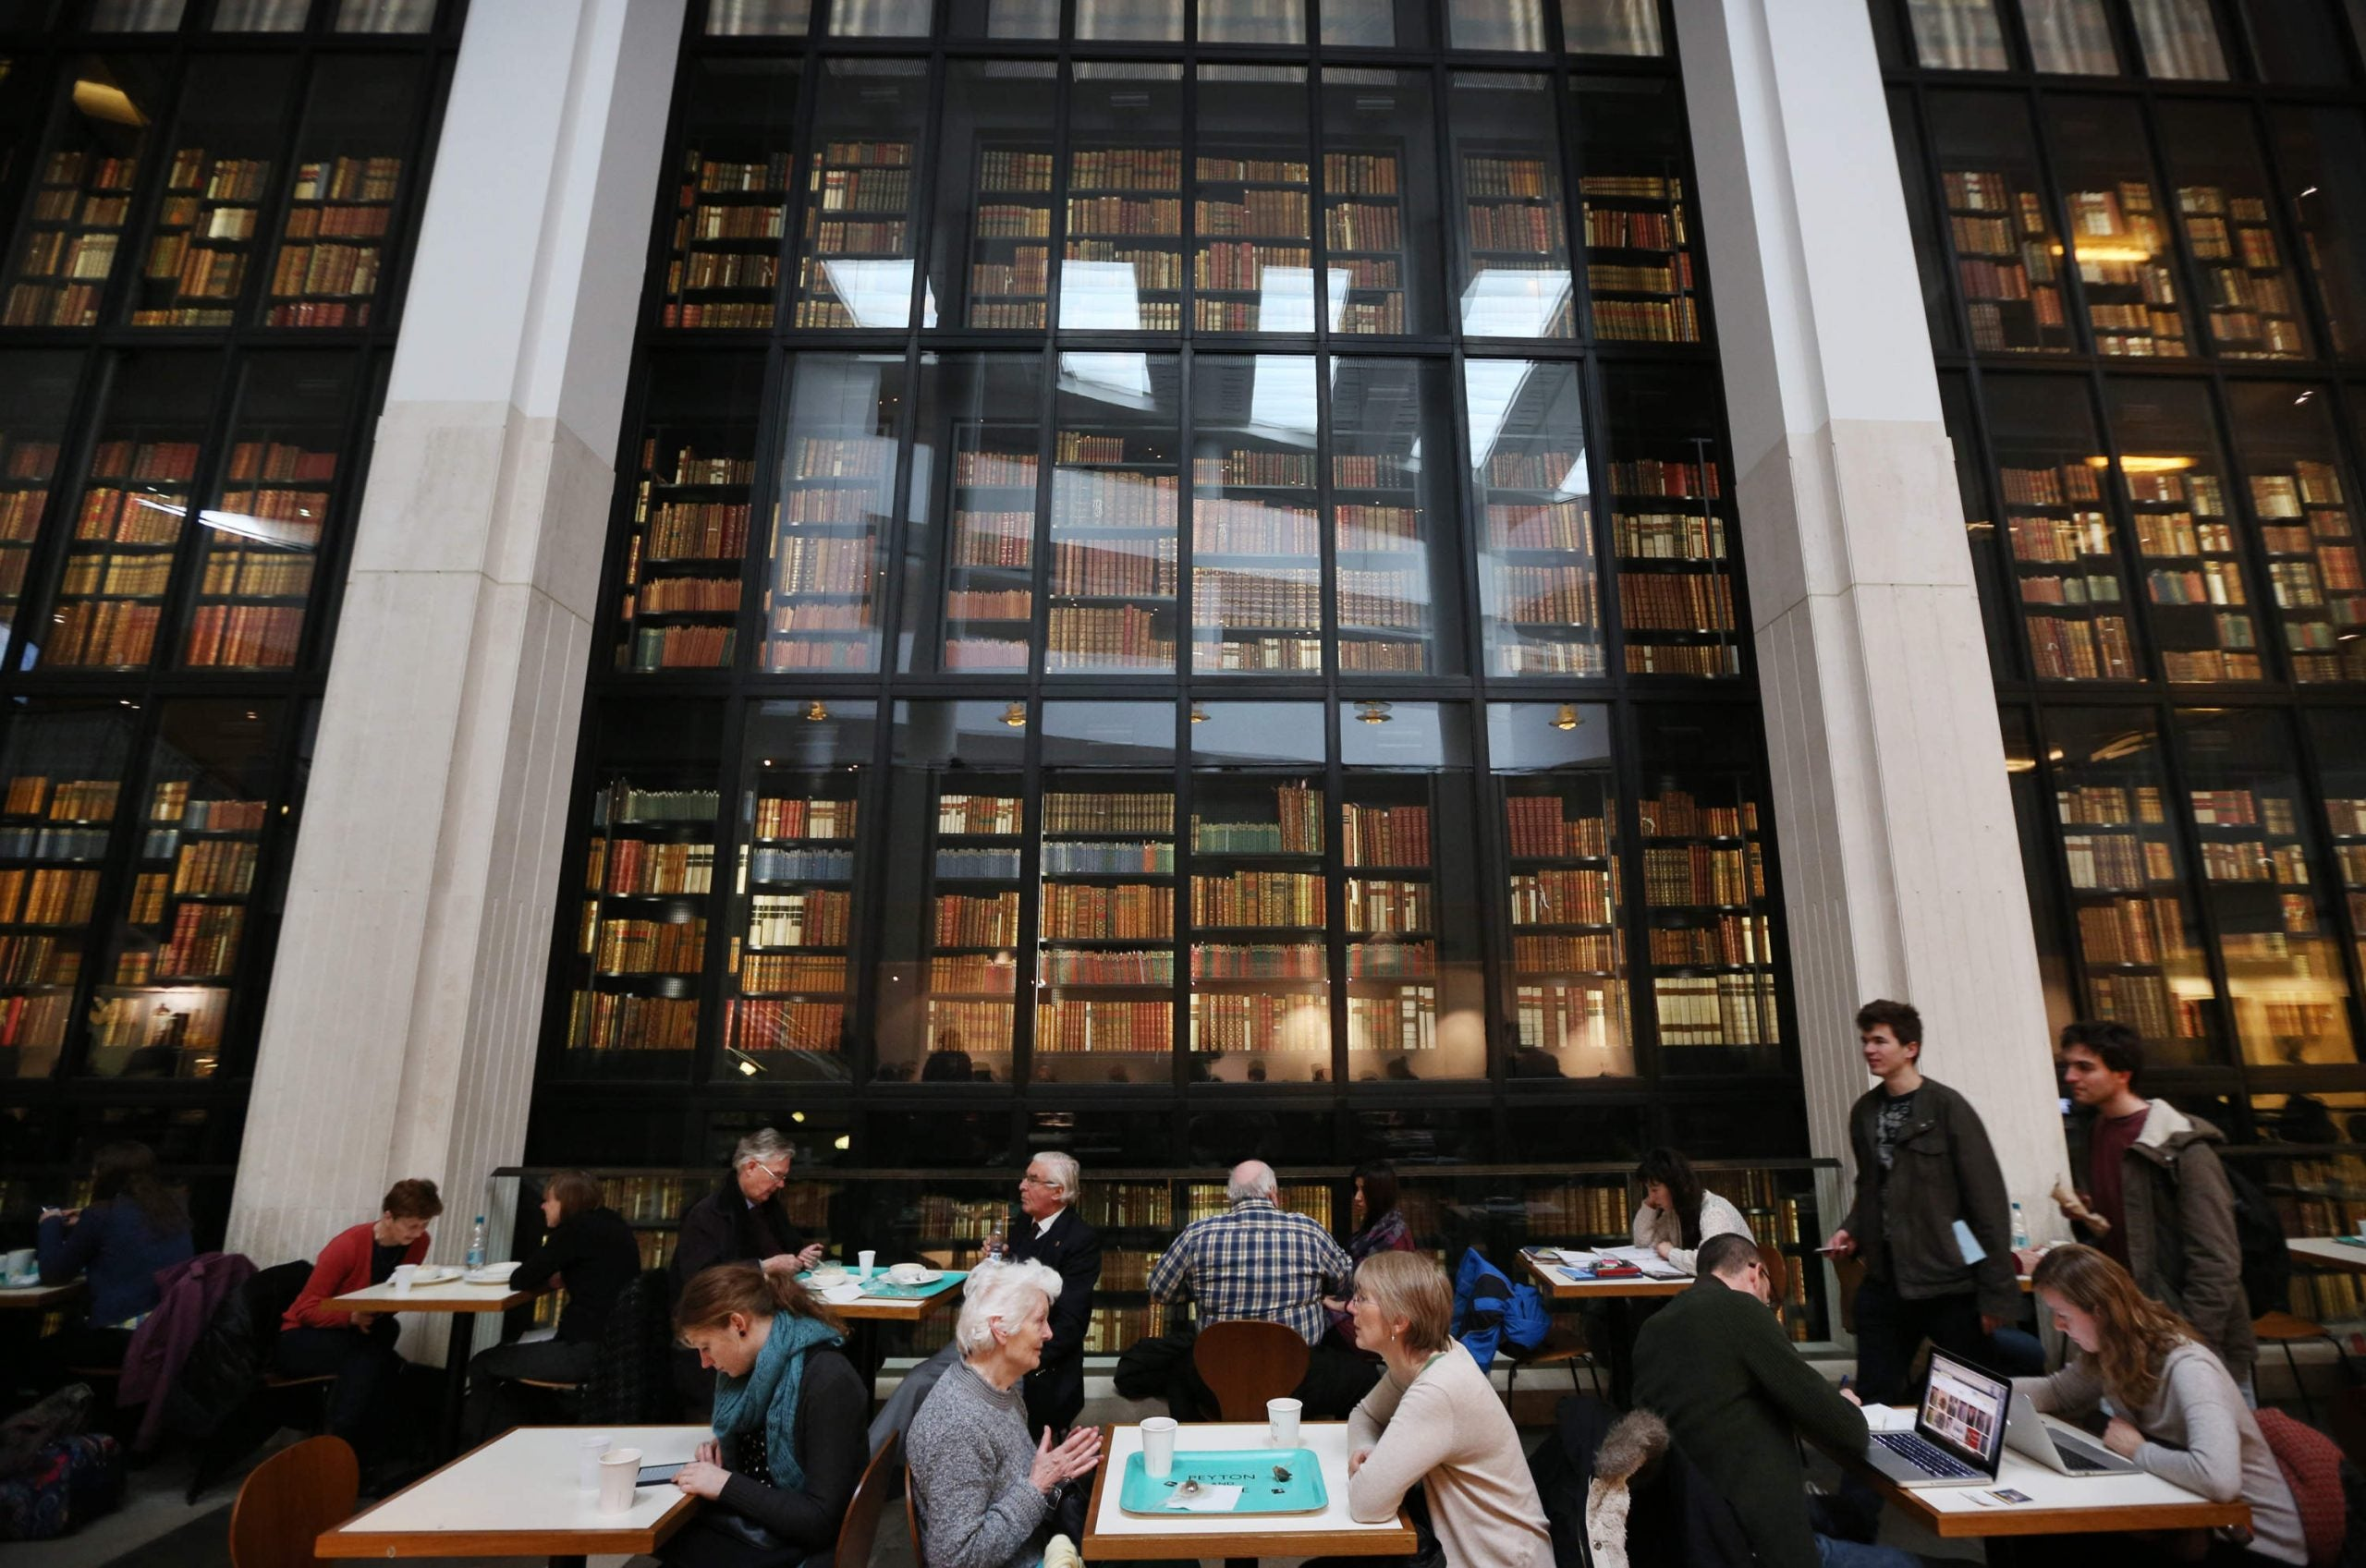 Libraries are for the homeless, the drifters and the snorers – people like me